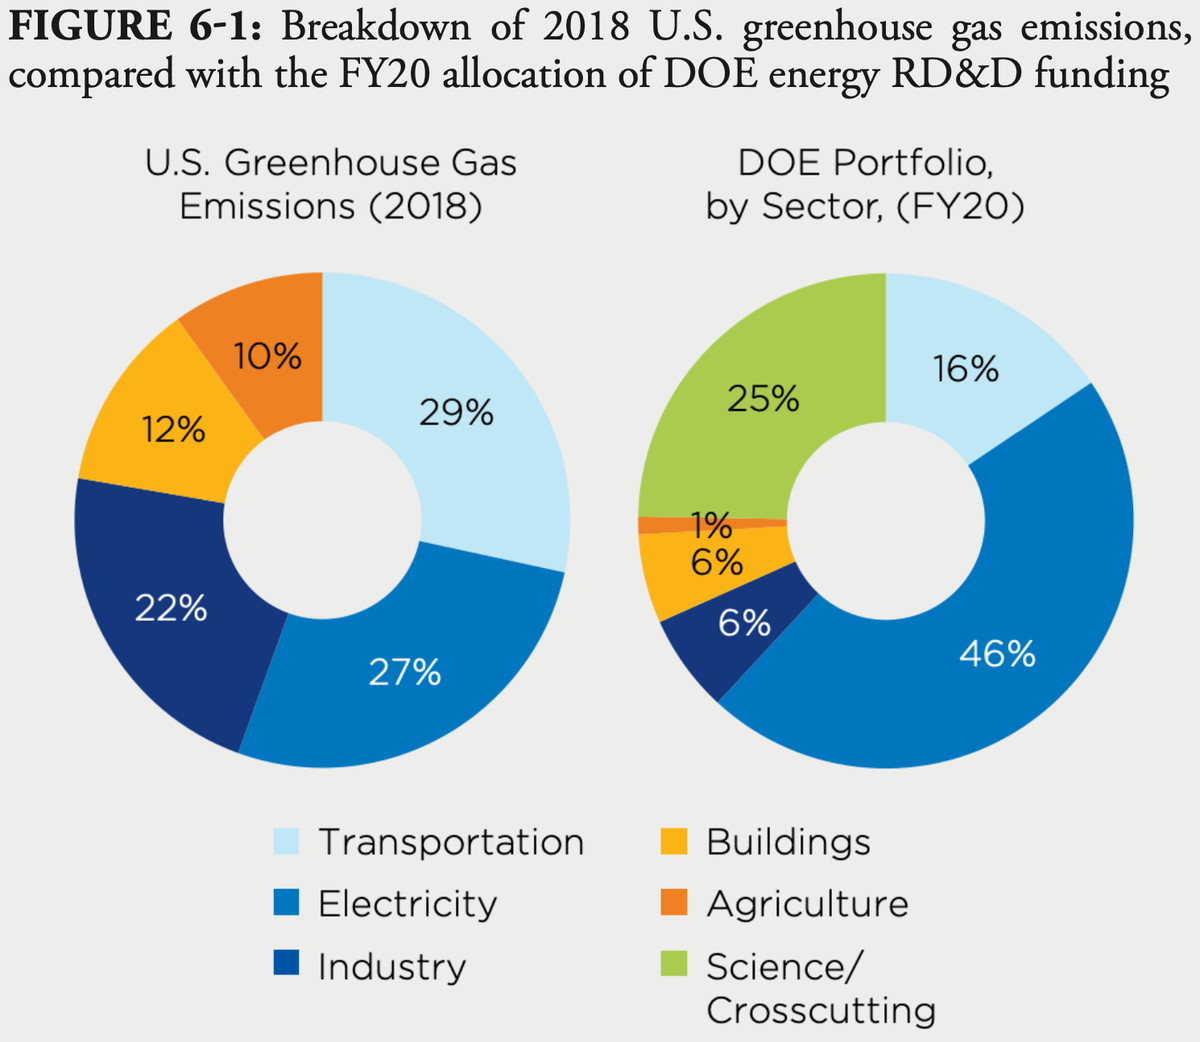 A comparison of greenhouse gas emissions (in 2018) versus Department of Energy R&D priorities in 2020.